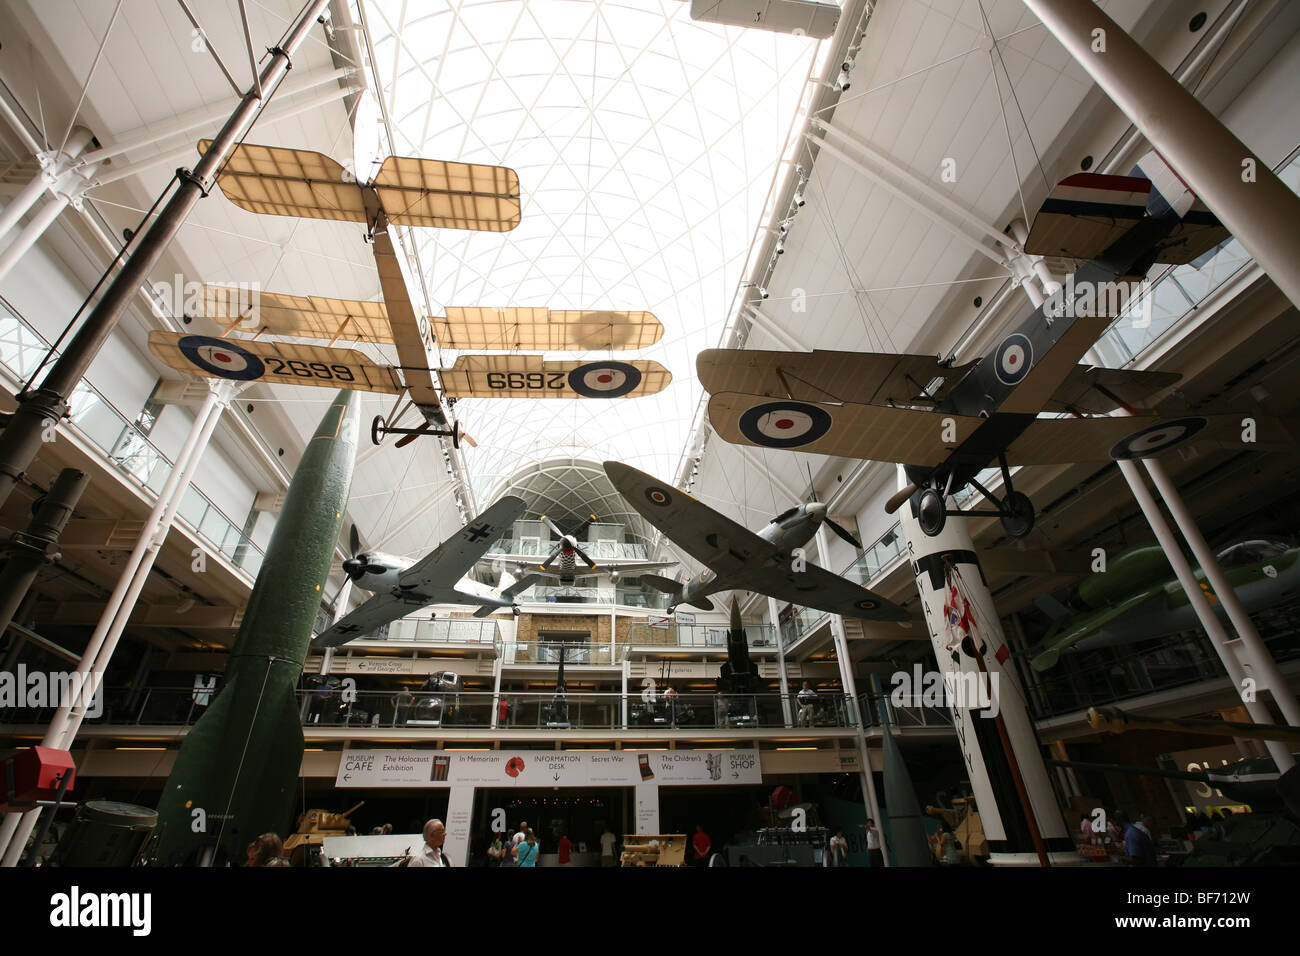 Interior of The Imperial War Museum, London UK 7/1/2009 Stock Photo